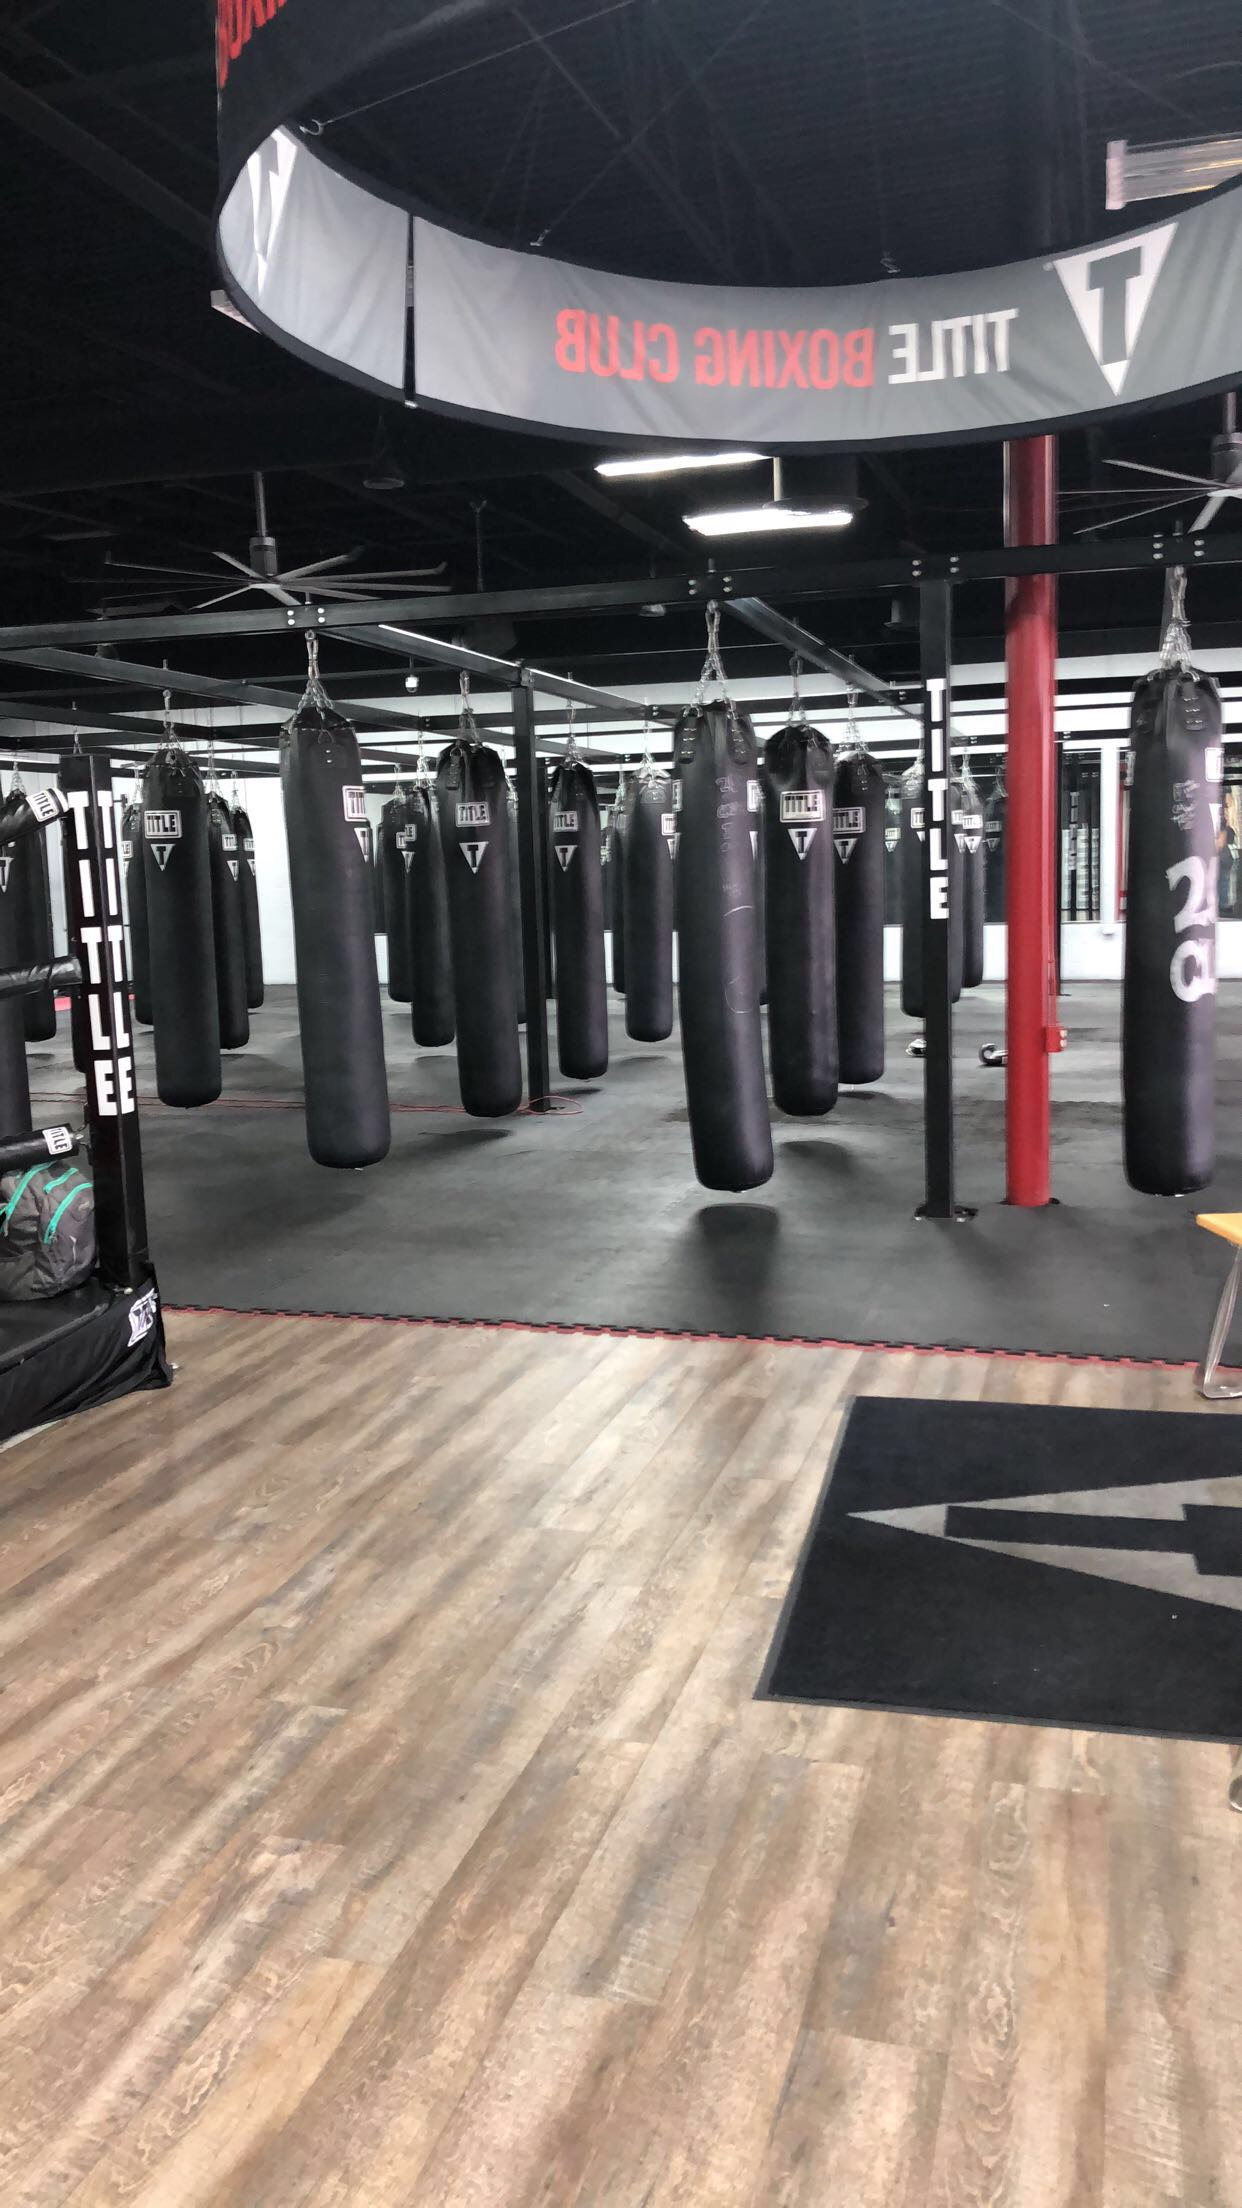 3 Easy Facts About Classpass Charlotte Shown